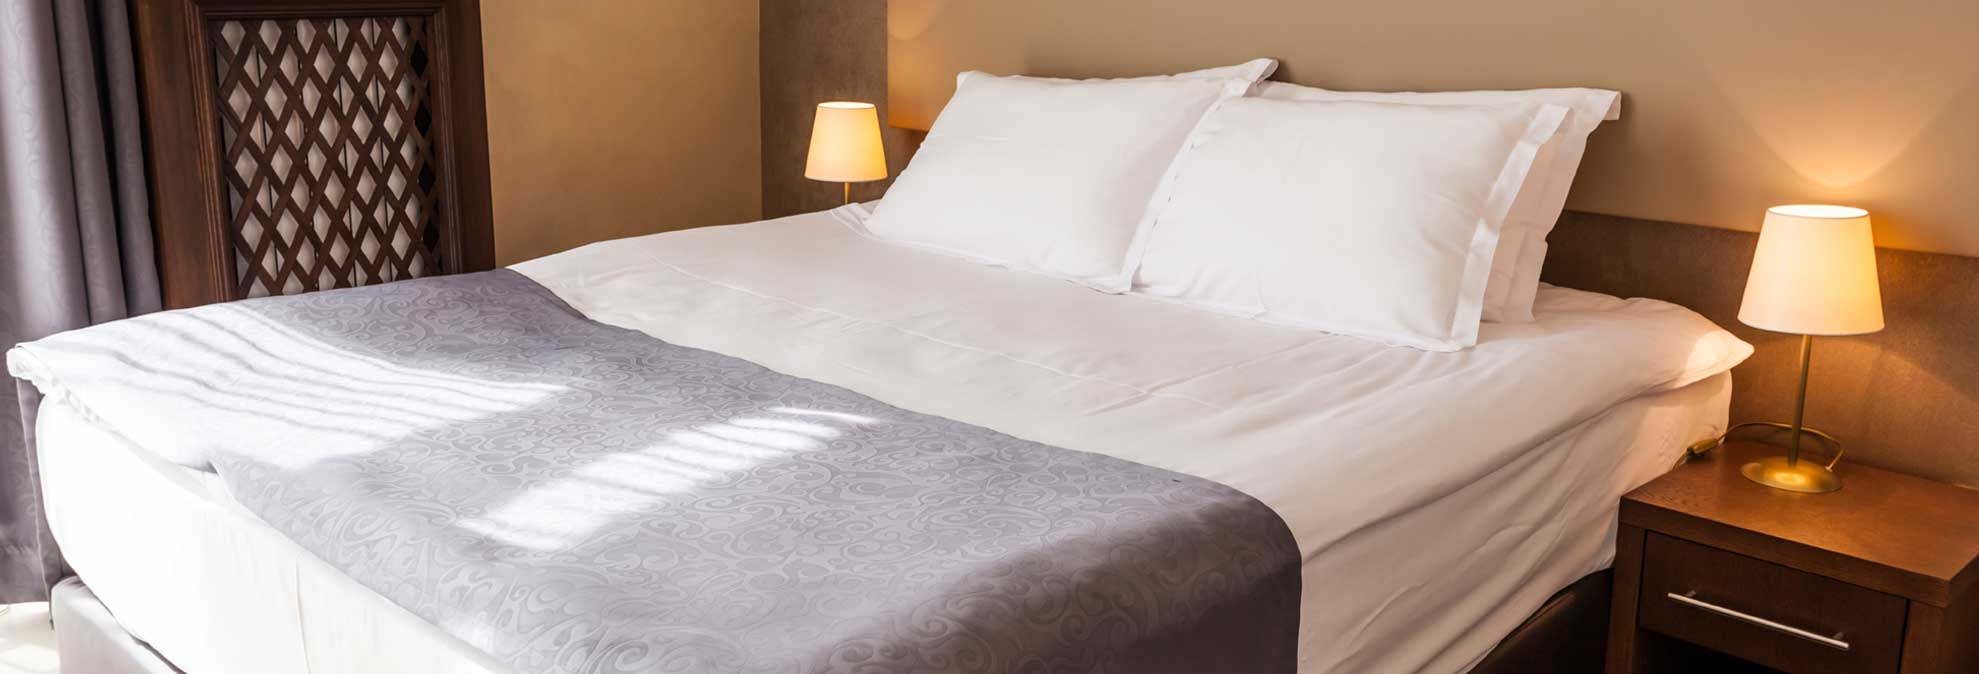 Ratings On Mattresses >> Best Mattress Buying Guide Consumer Reports